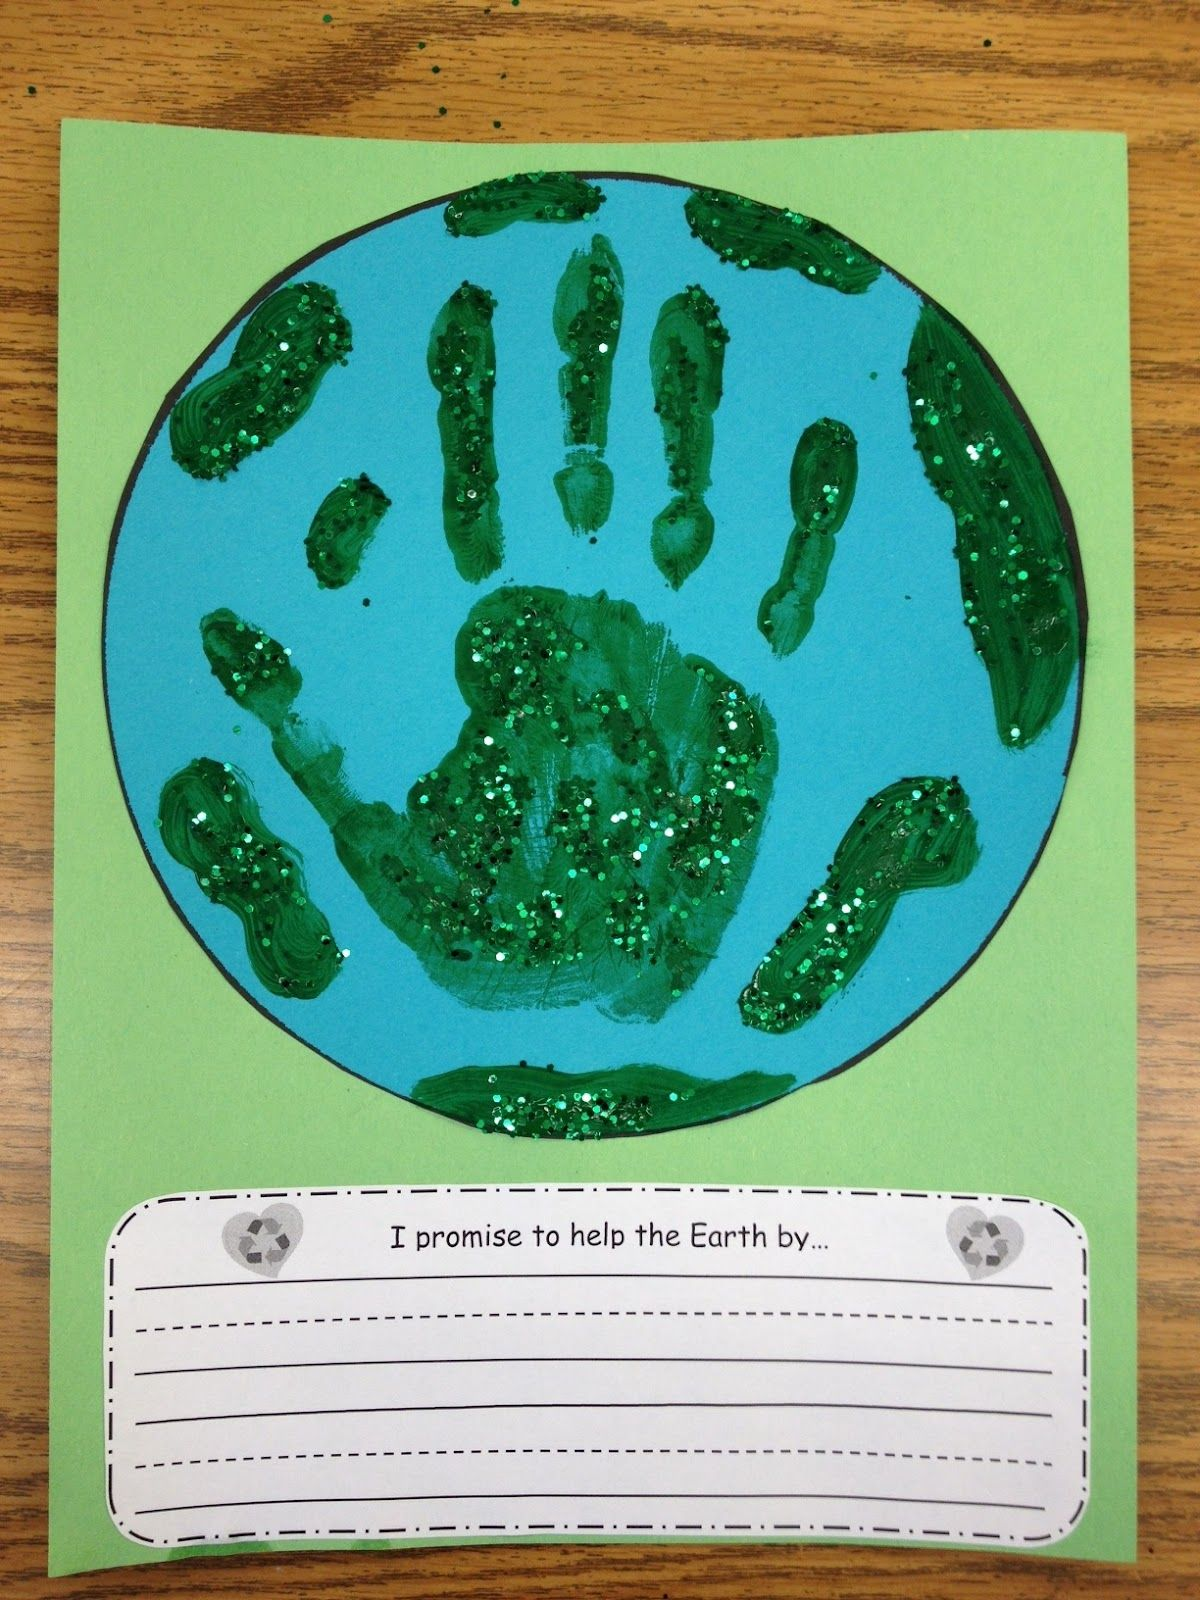 Earth Day Art to set a goal to help the Earth and write down how